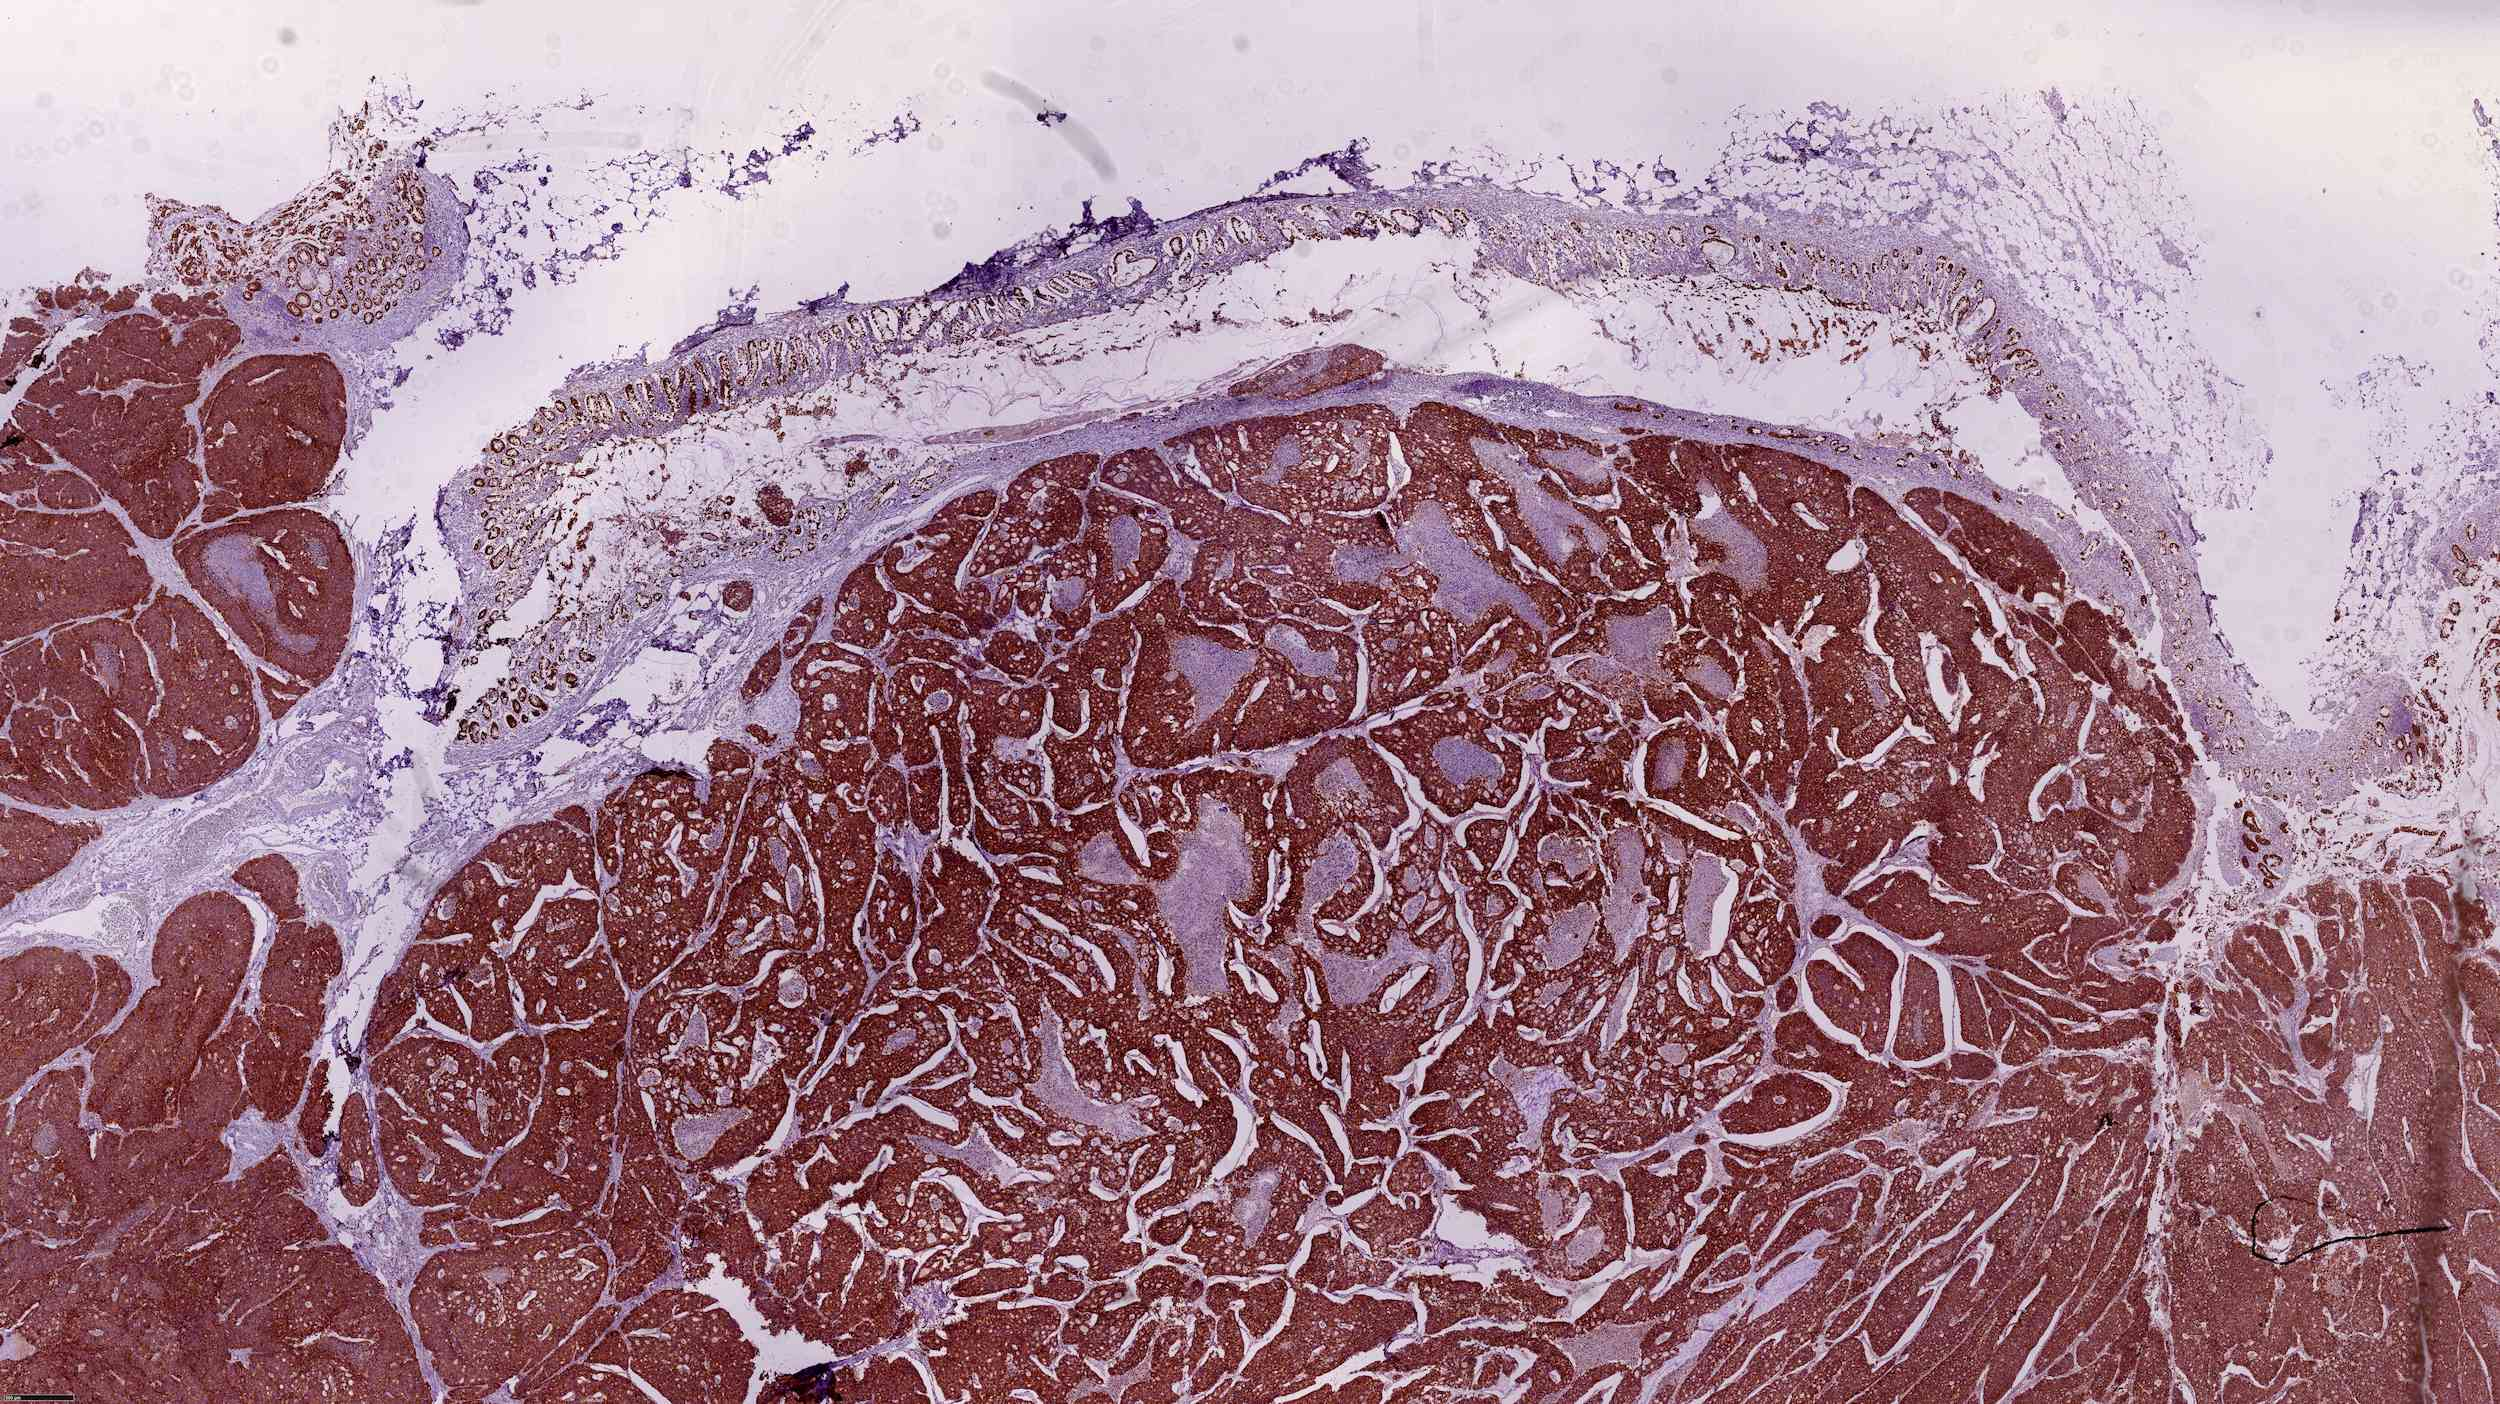 Immunohistochemical staining Hematoxylin-Eosin, highlights a malignant proliferate tumor (adnocarcinoma), adipose tissue (abdominal fat) infiltrated by a malignant lesion of pancreatic origin. Nerve fillets with perineal infiltration are presented.